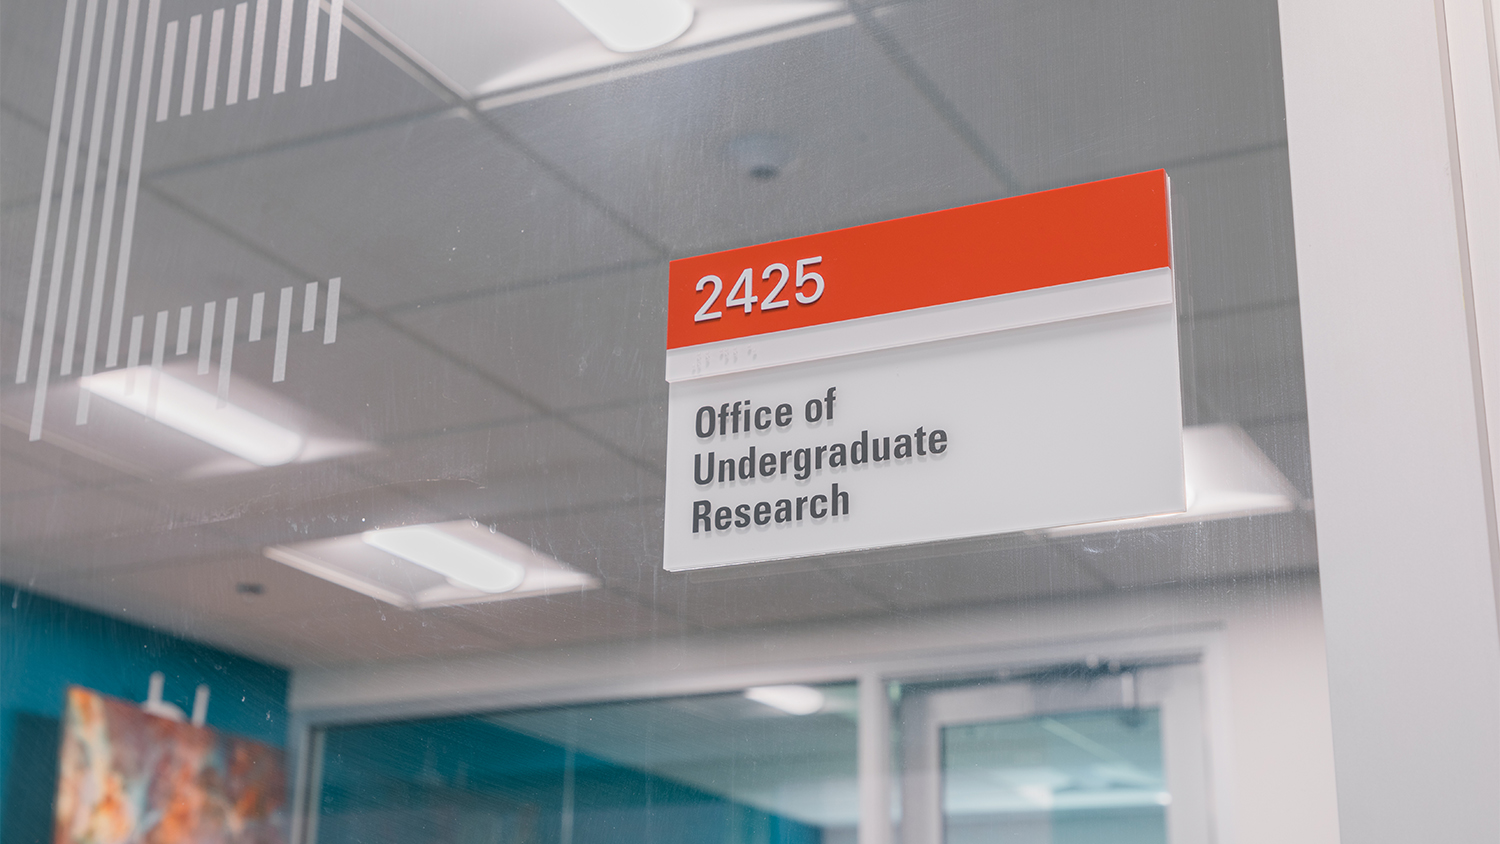 Sign for the Office of Undergraduate Research